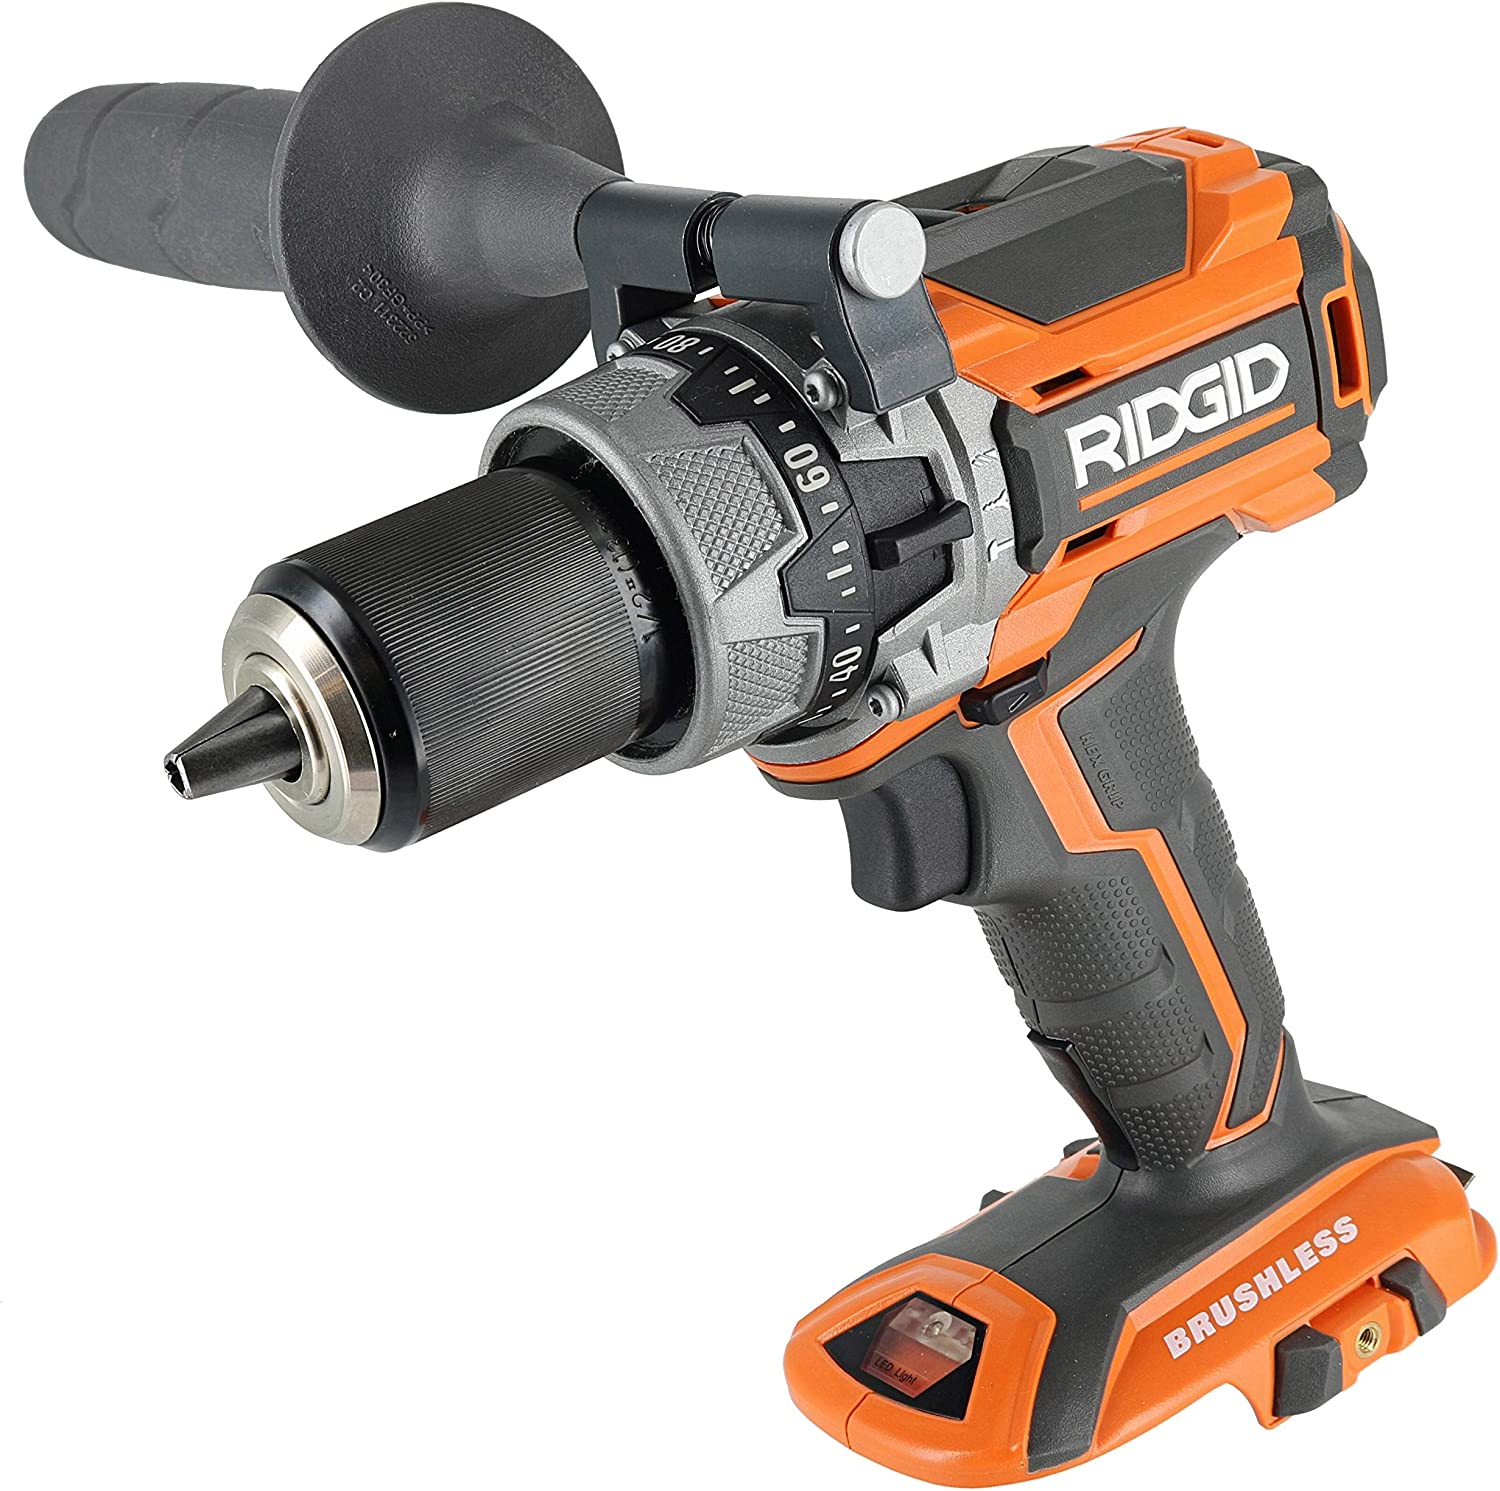 Ridgid R86116 18V Lithium Ion Cordless Brushless Compact Hammer Drill w 100-Setting Micro Clutch and LED Lighting Battery Not Included Power Tool Only